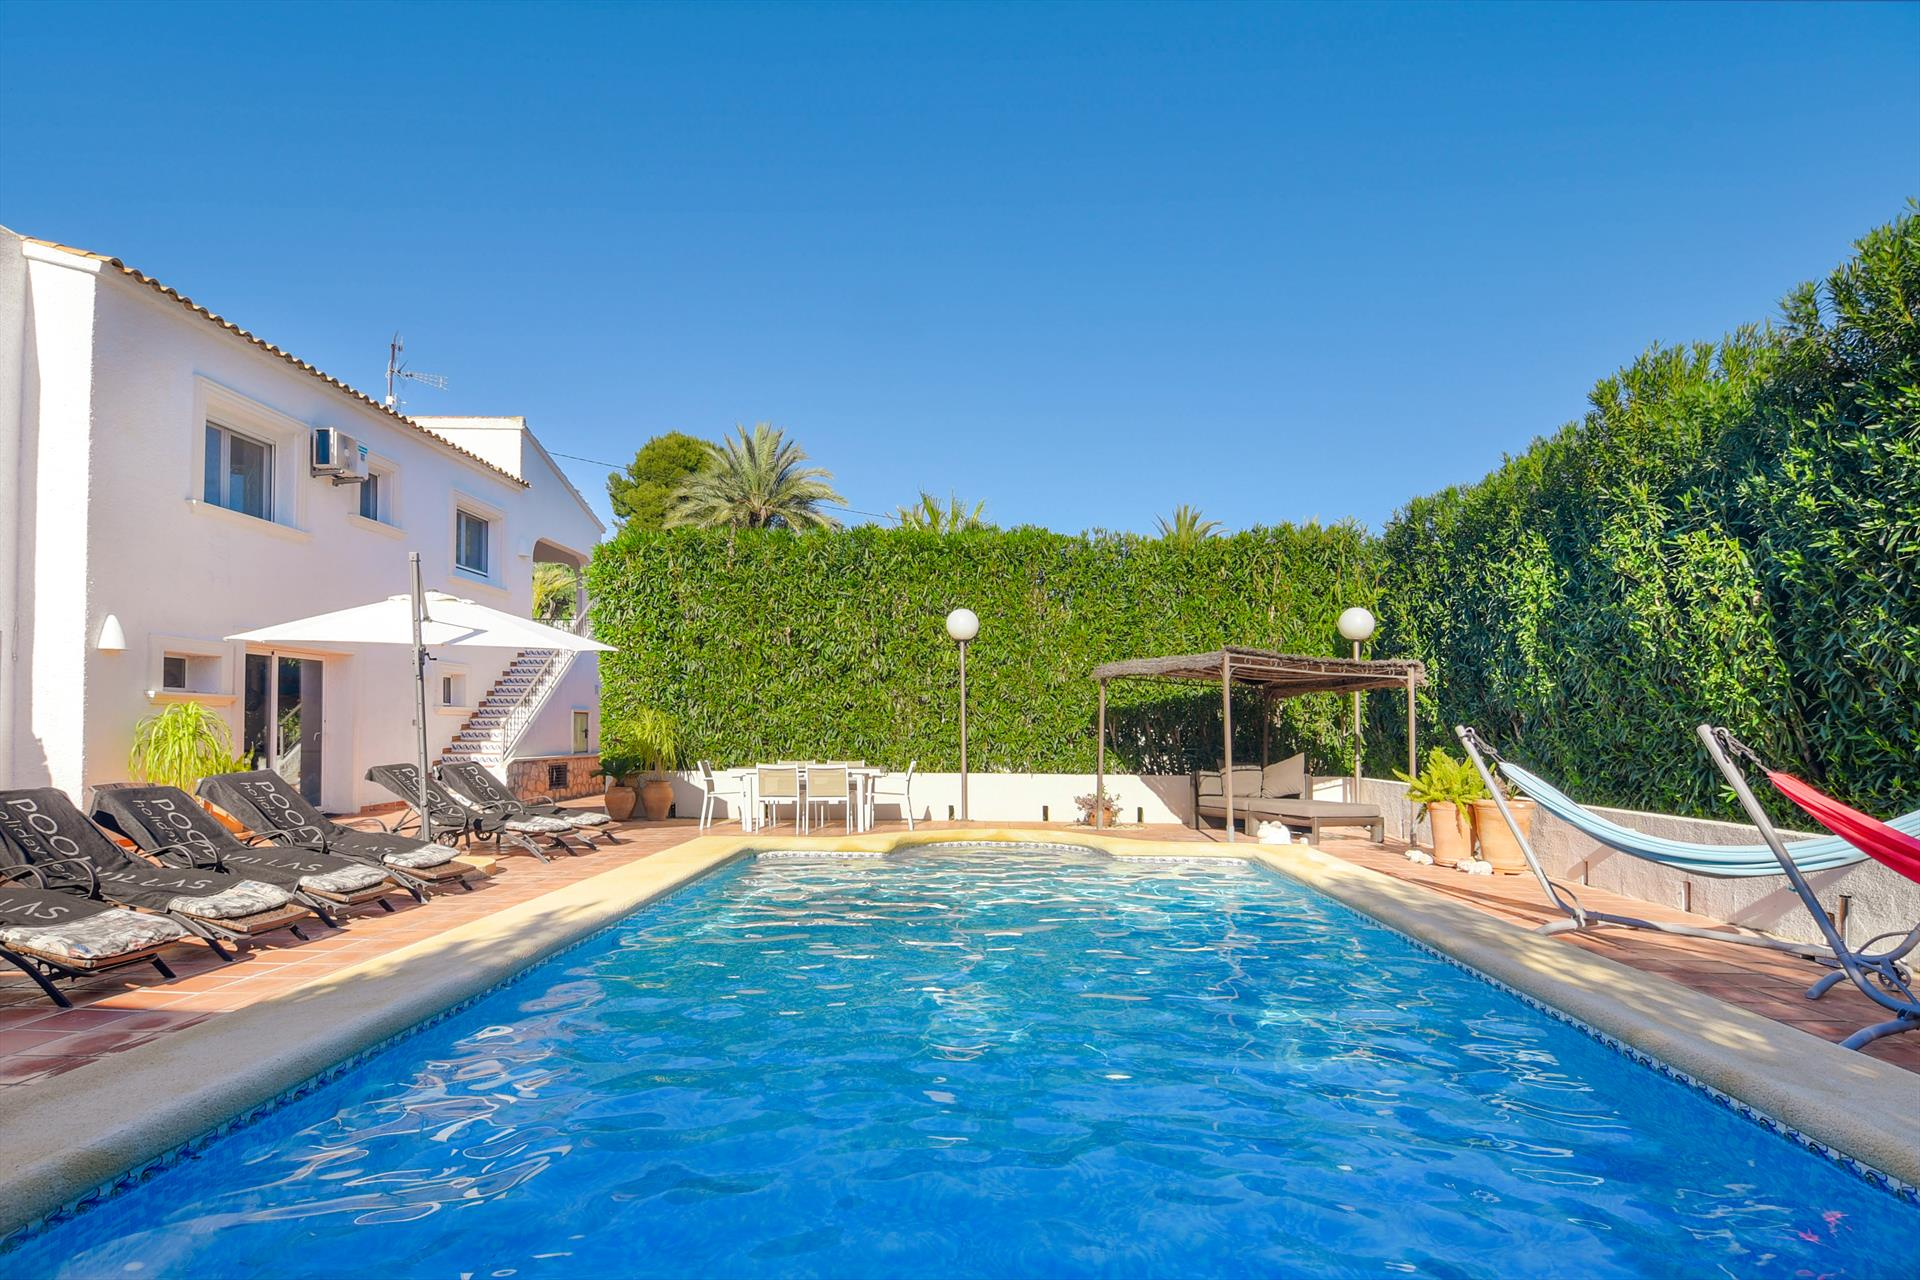 Andrago 10, Large and comfortable villa in Moraira, on the Costa Blanca, Spain  with heated pool for 10 persons.....